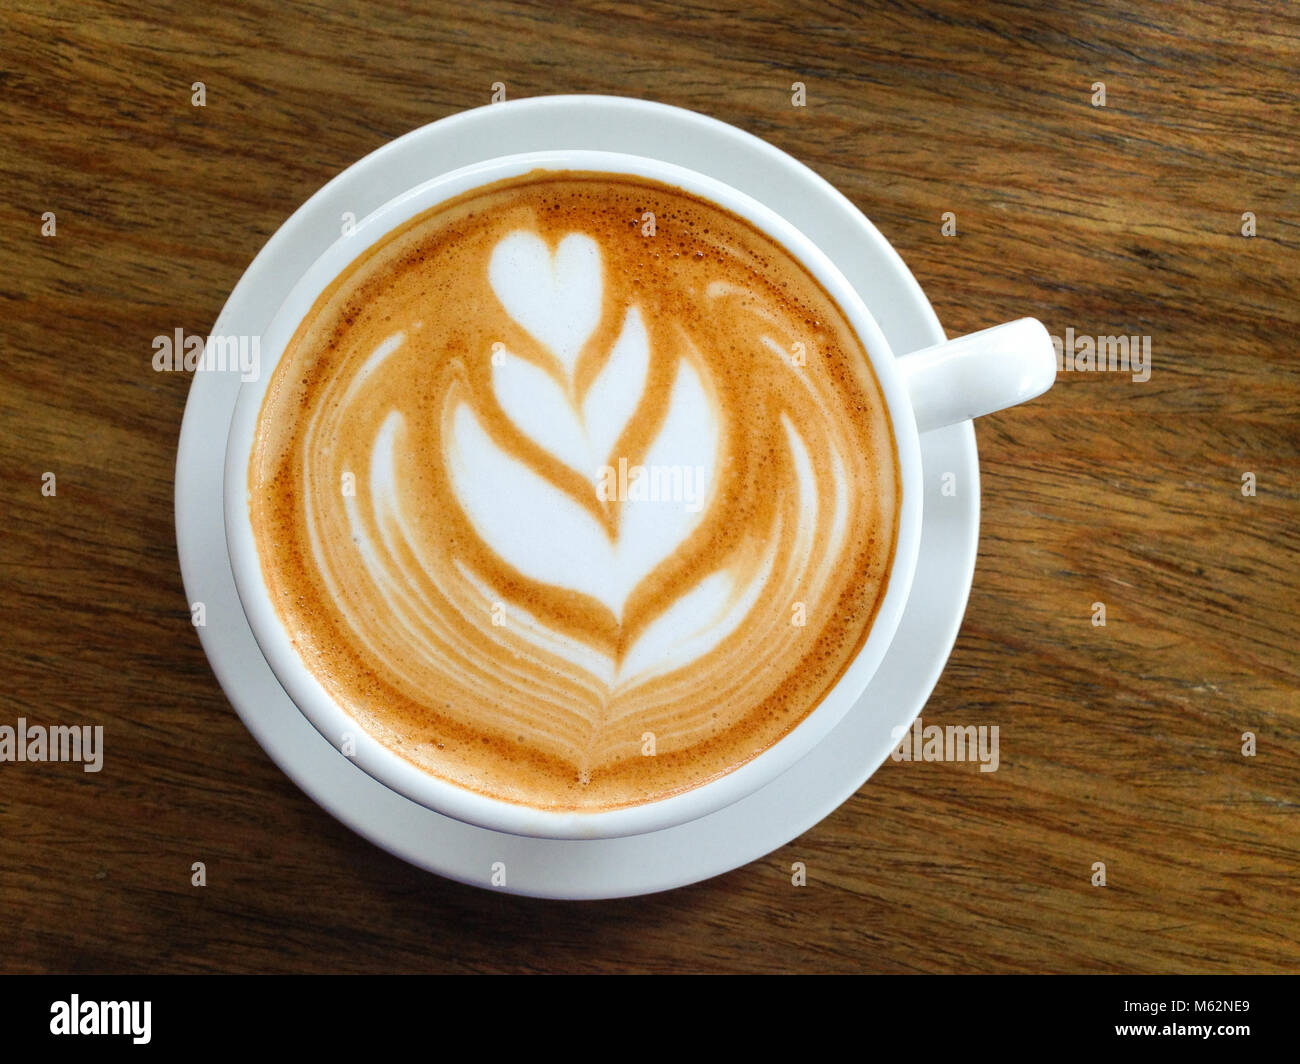 Delicious coffee cappuccino with white milk leaf decoration on white cup and plate over wooden background - Stock Image